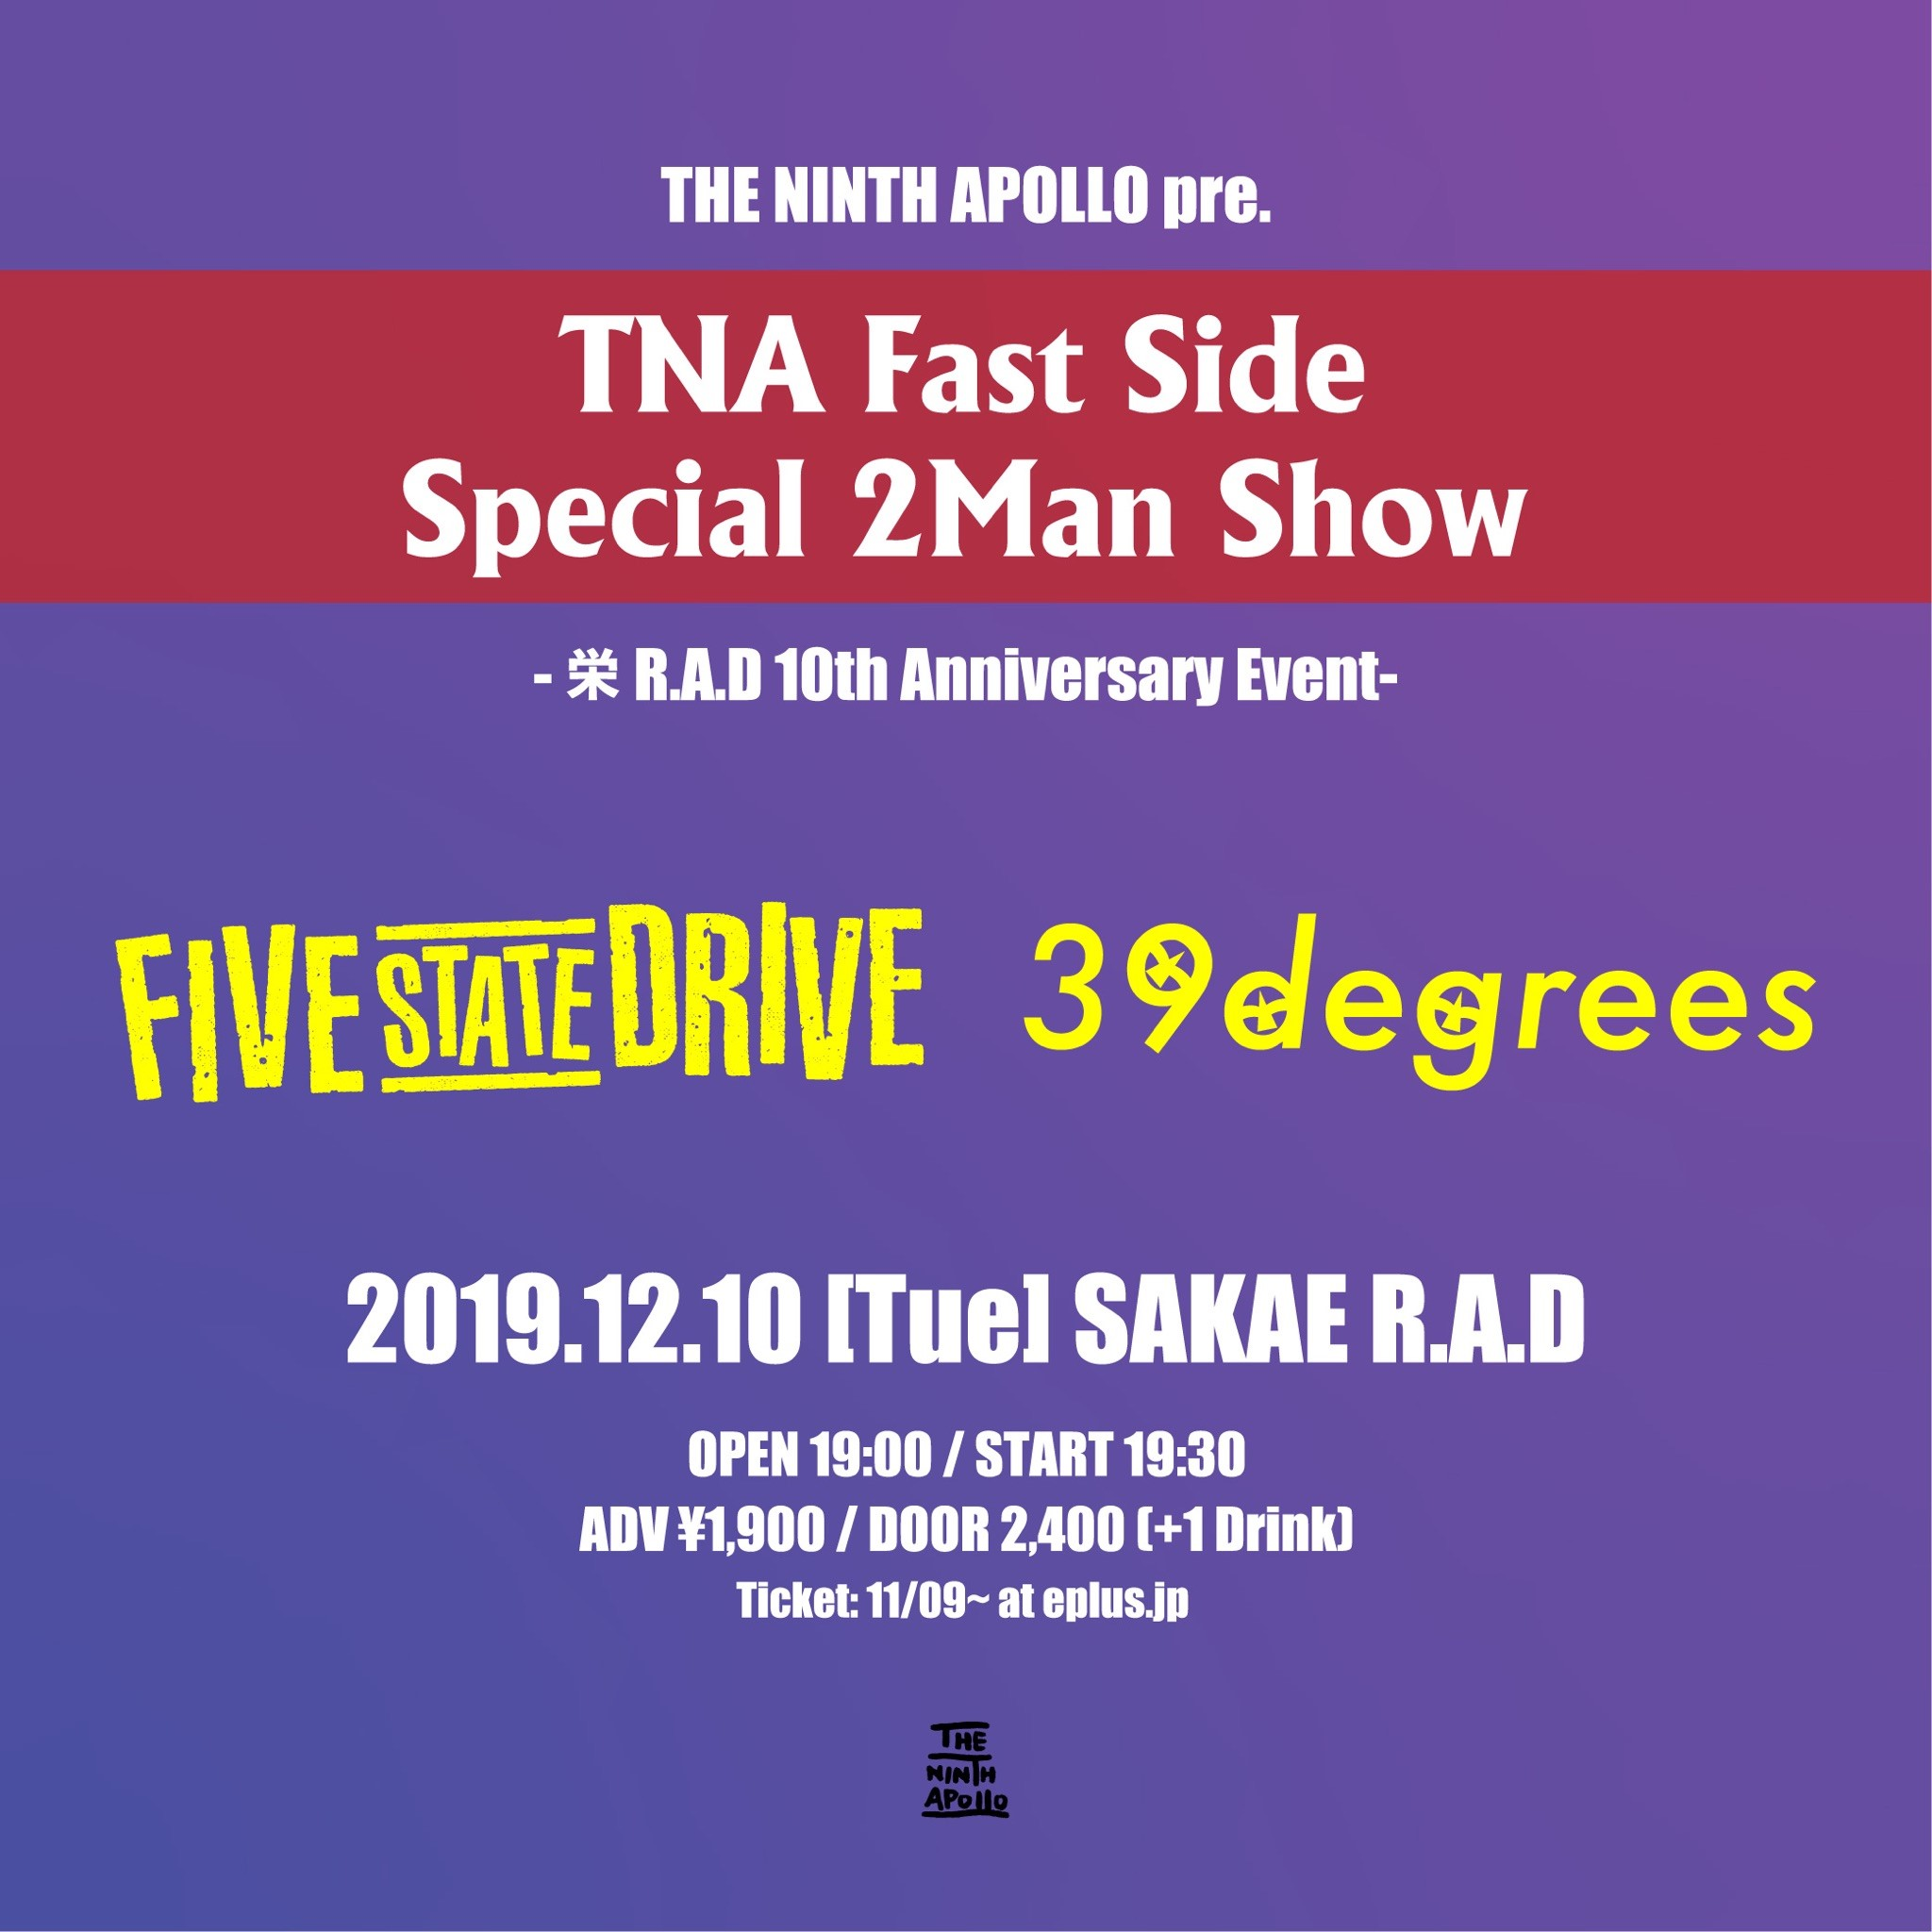 THE NINTH APOLLO pre. TNA Fast Side Special 2Man Show -栄R.A.D.A.D 10th Anniversary Event-